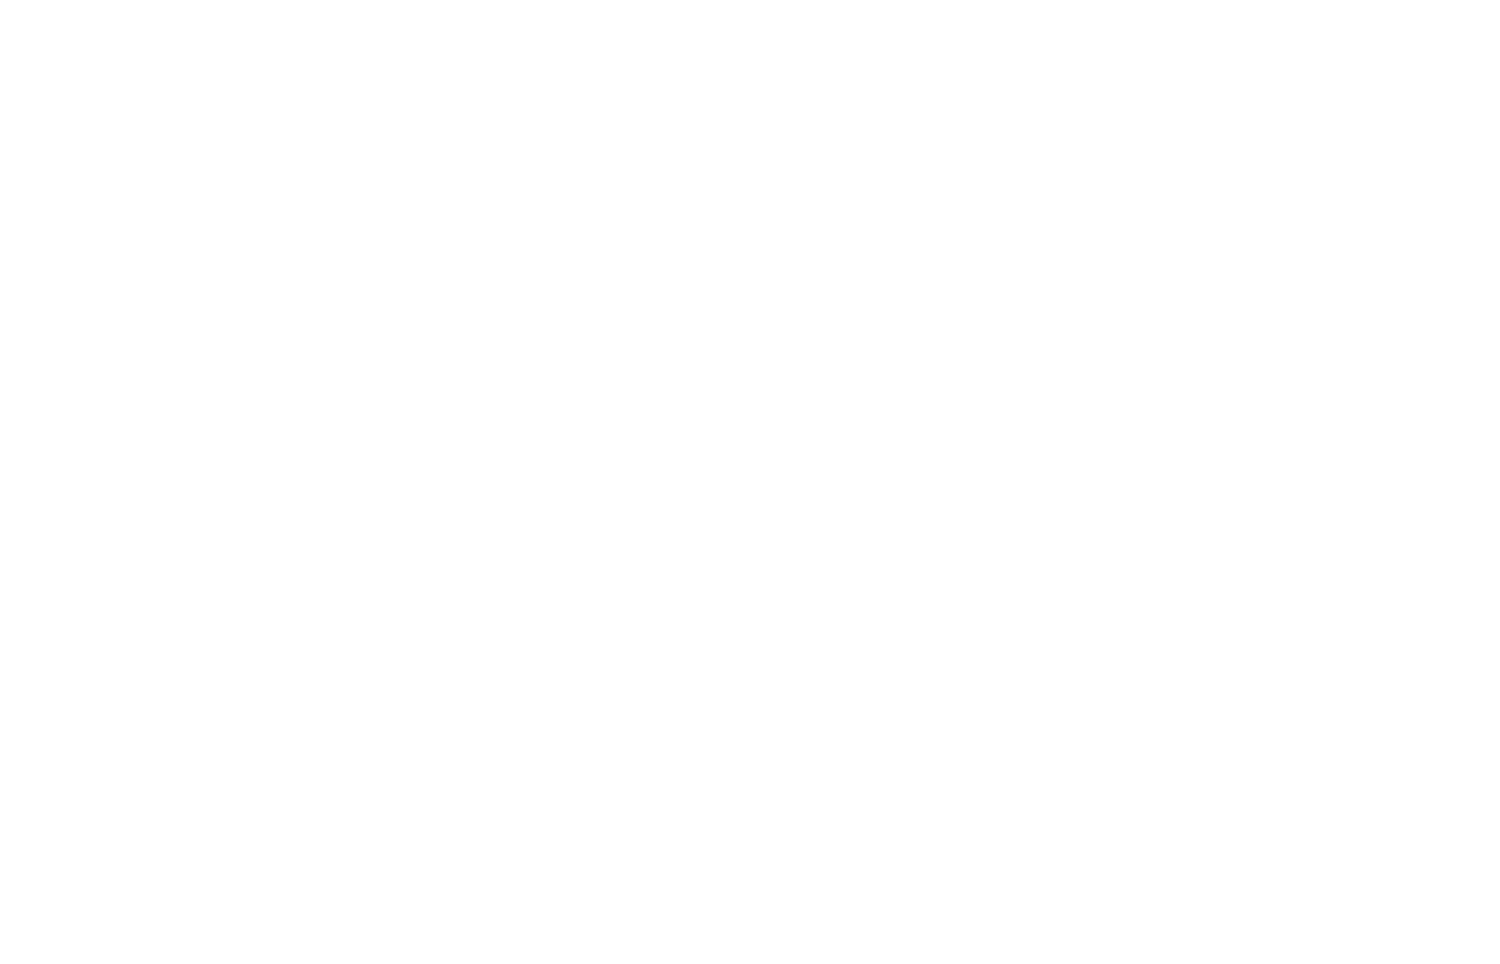 Thompson Property Managemet